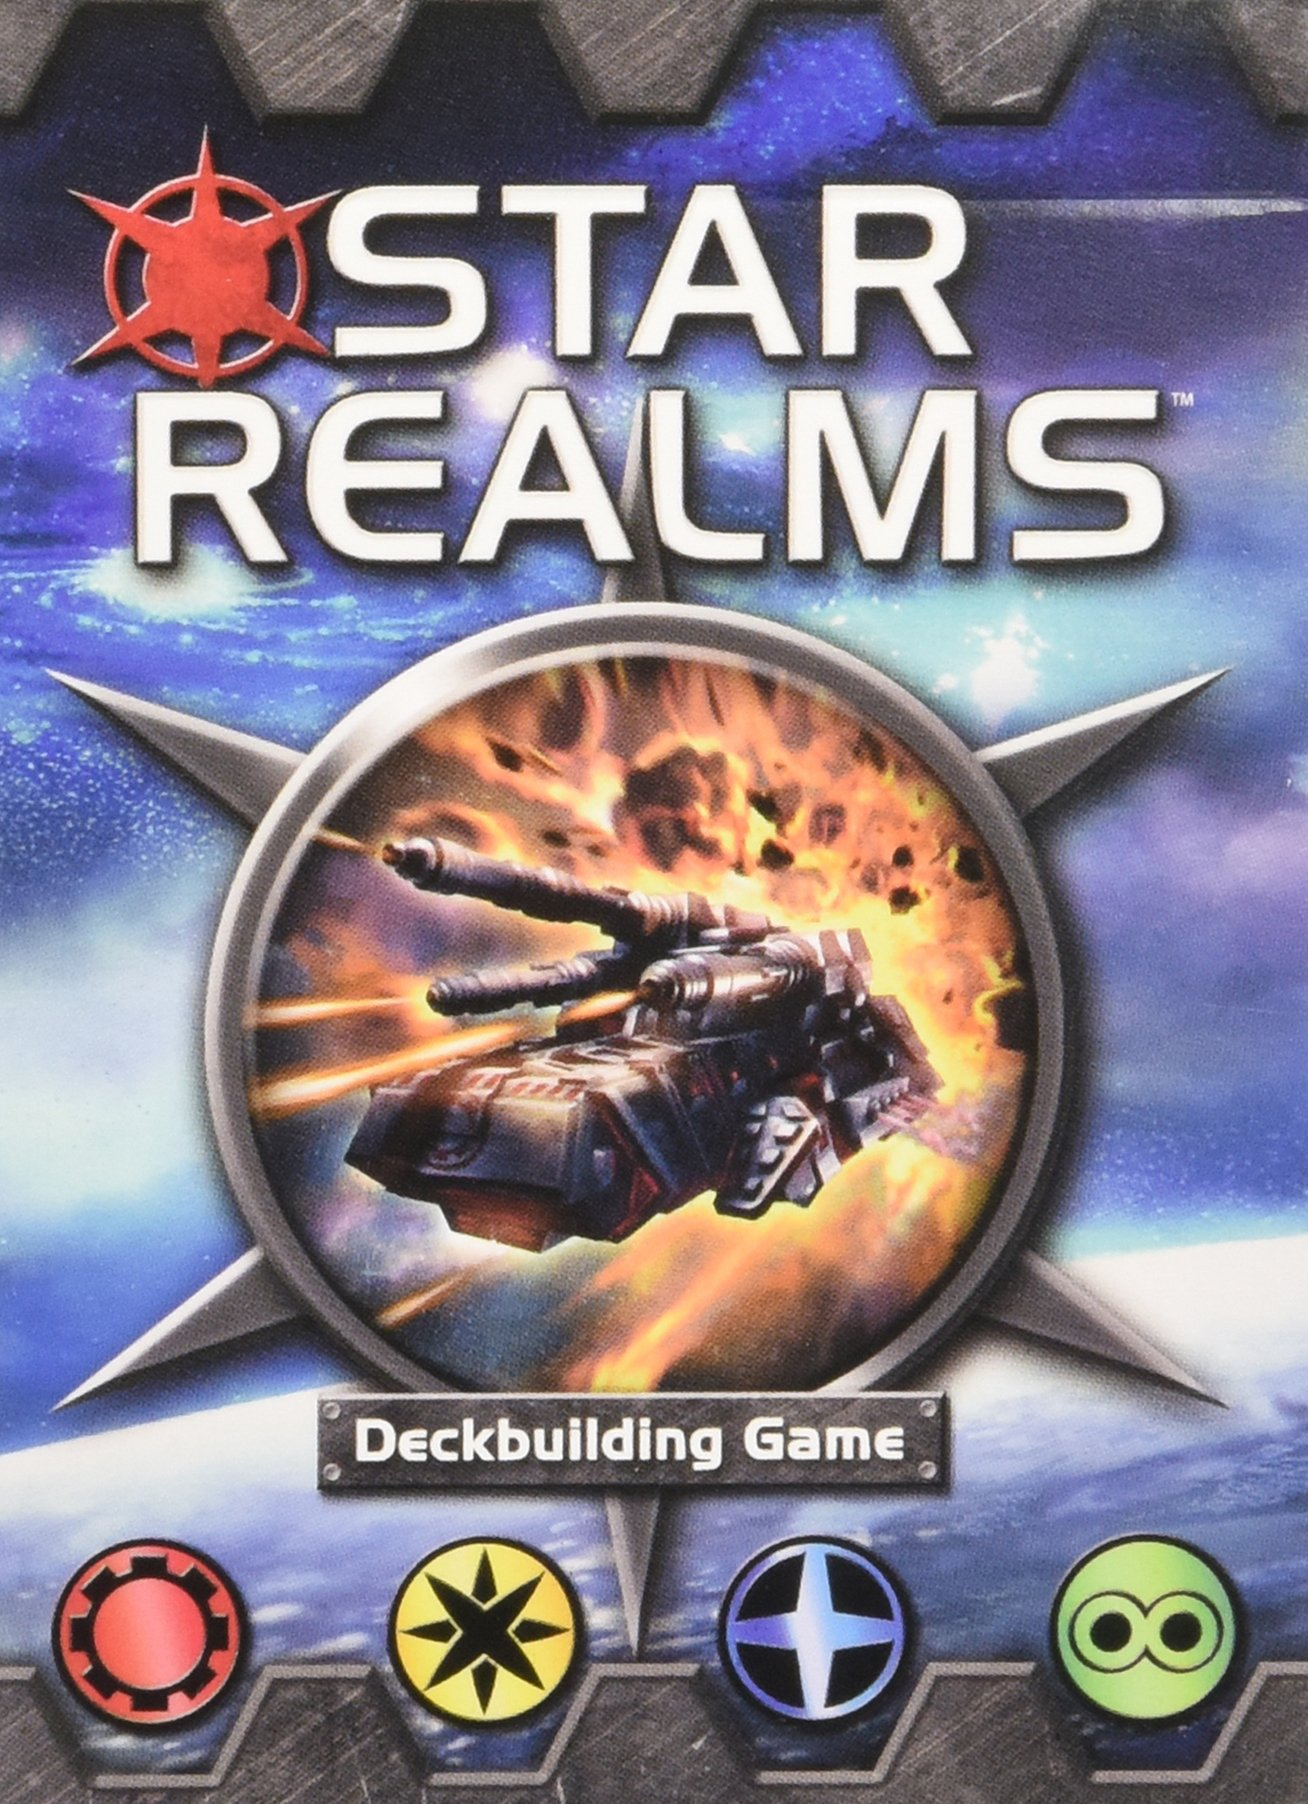 Star Realms: Deckbuilding Game by White Wizard Games